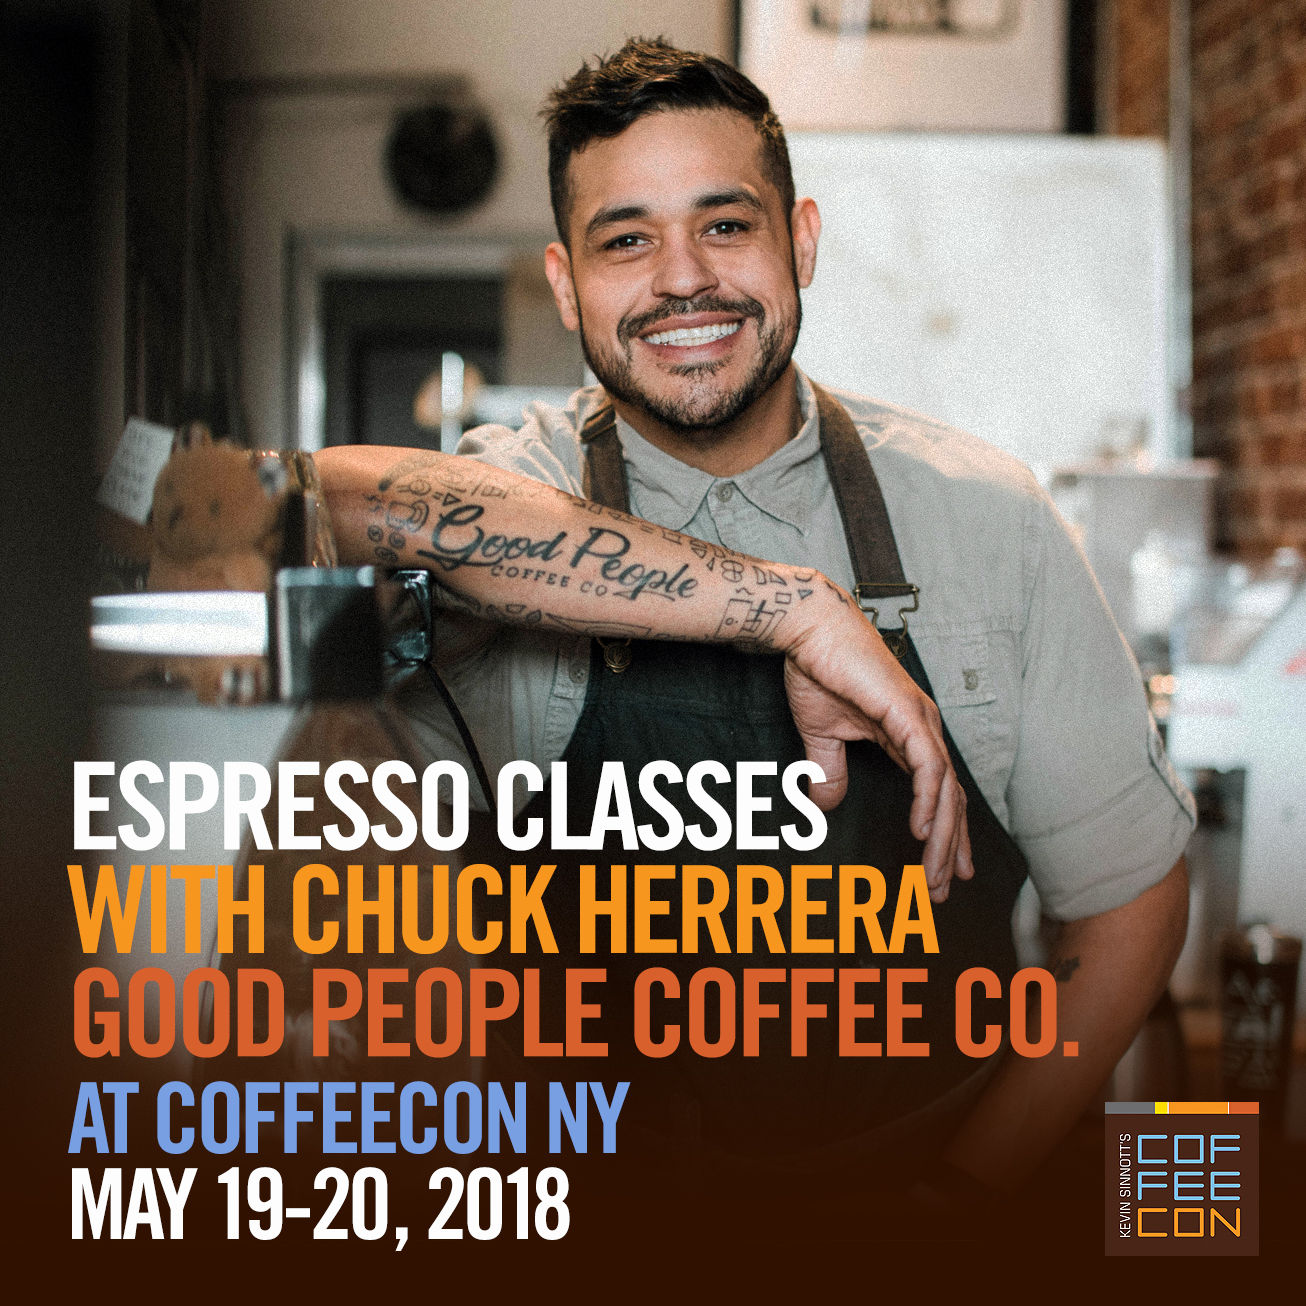 Espresso Classes with Chuck Herrera